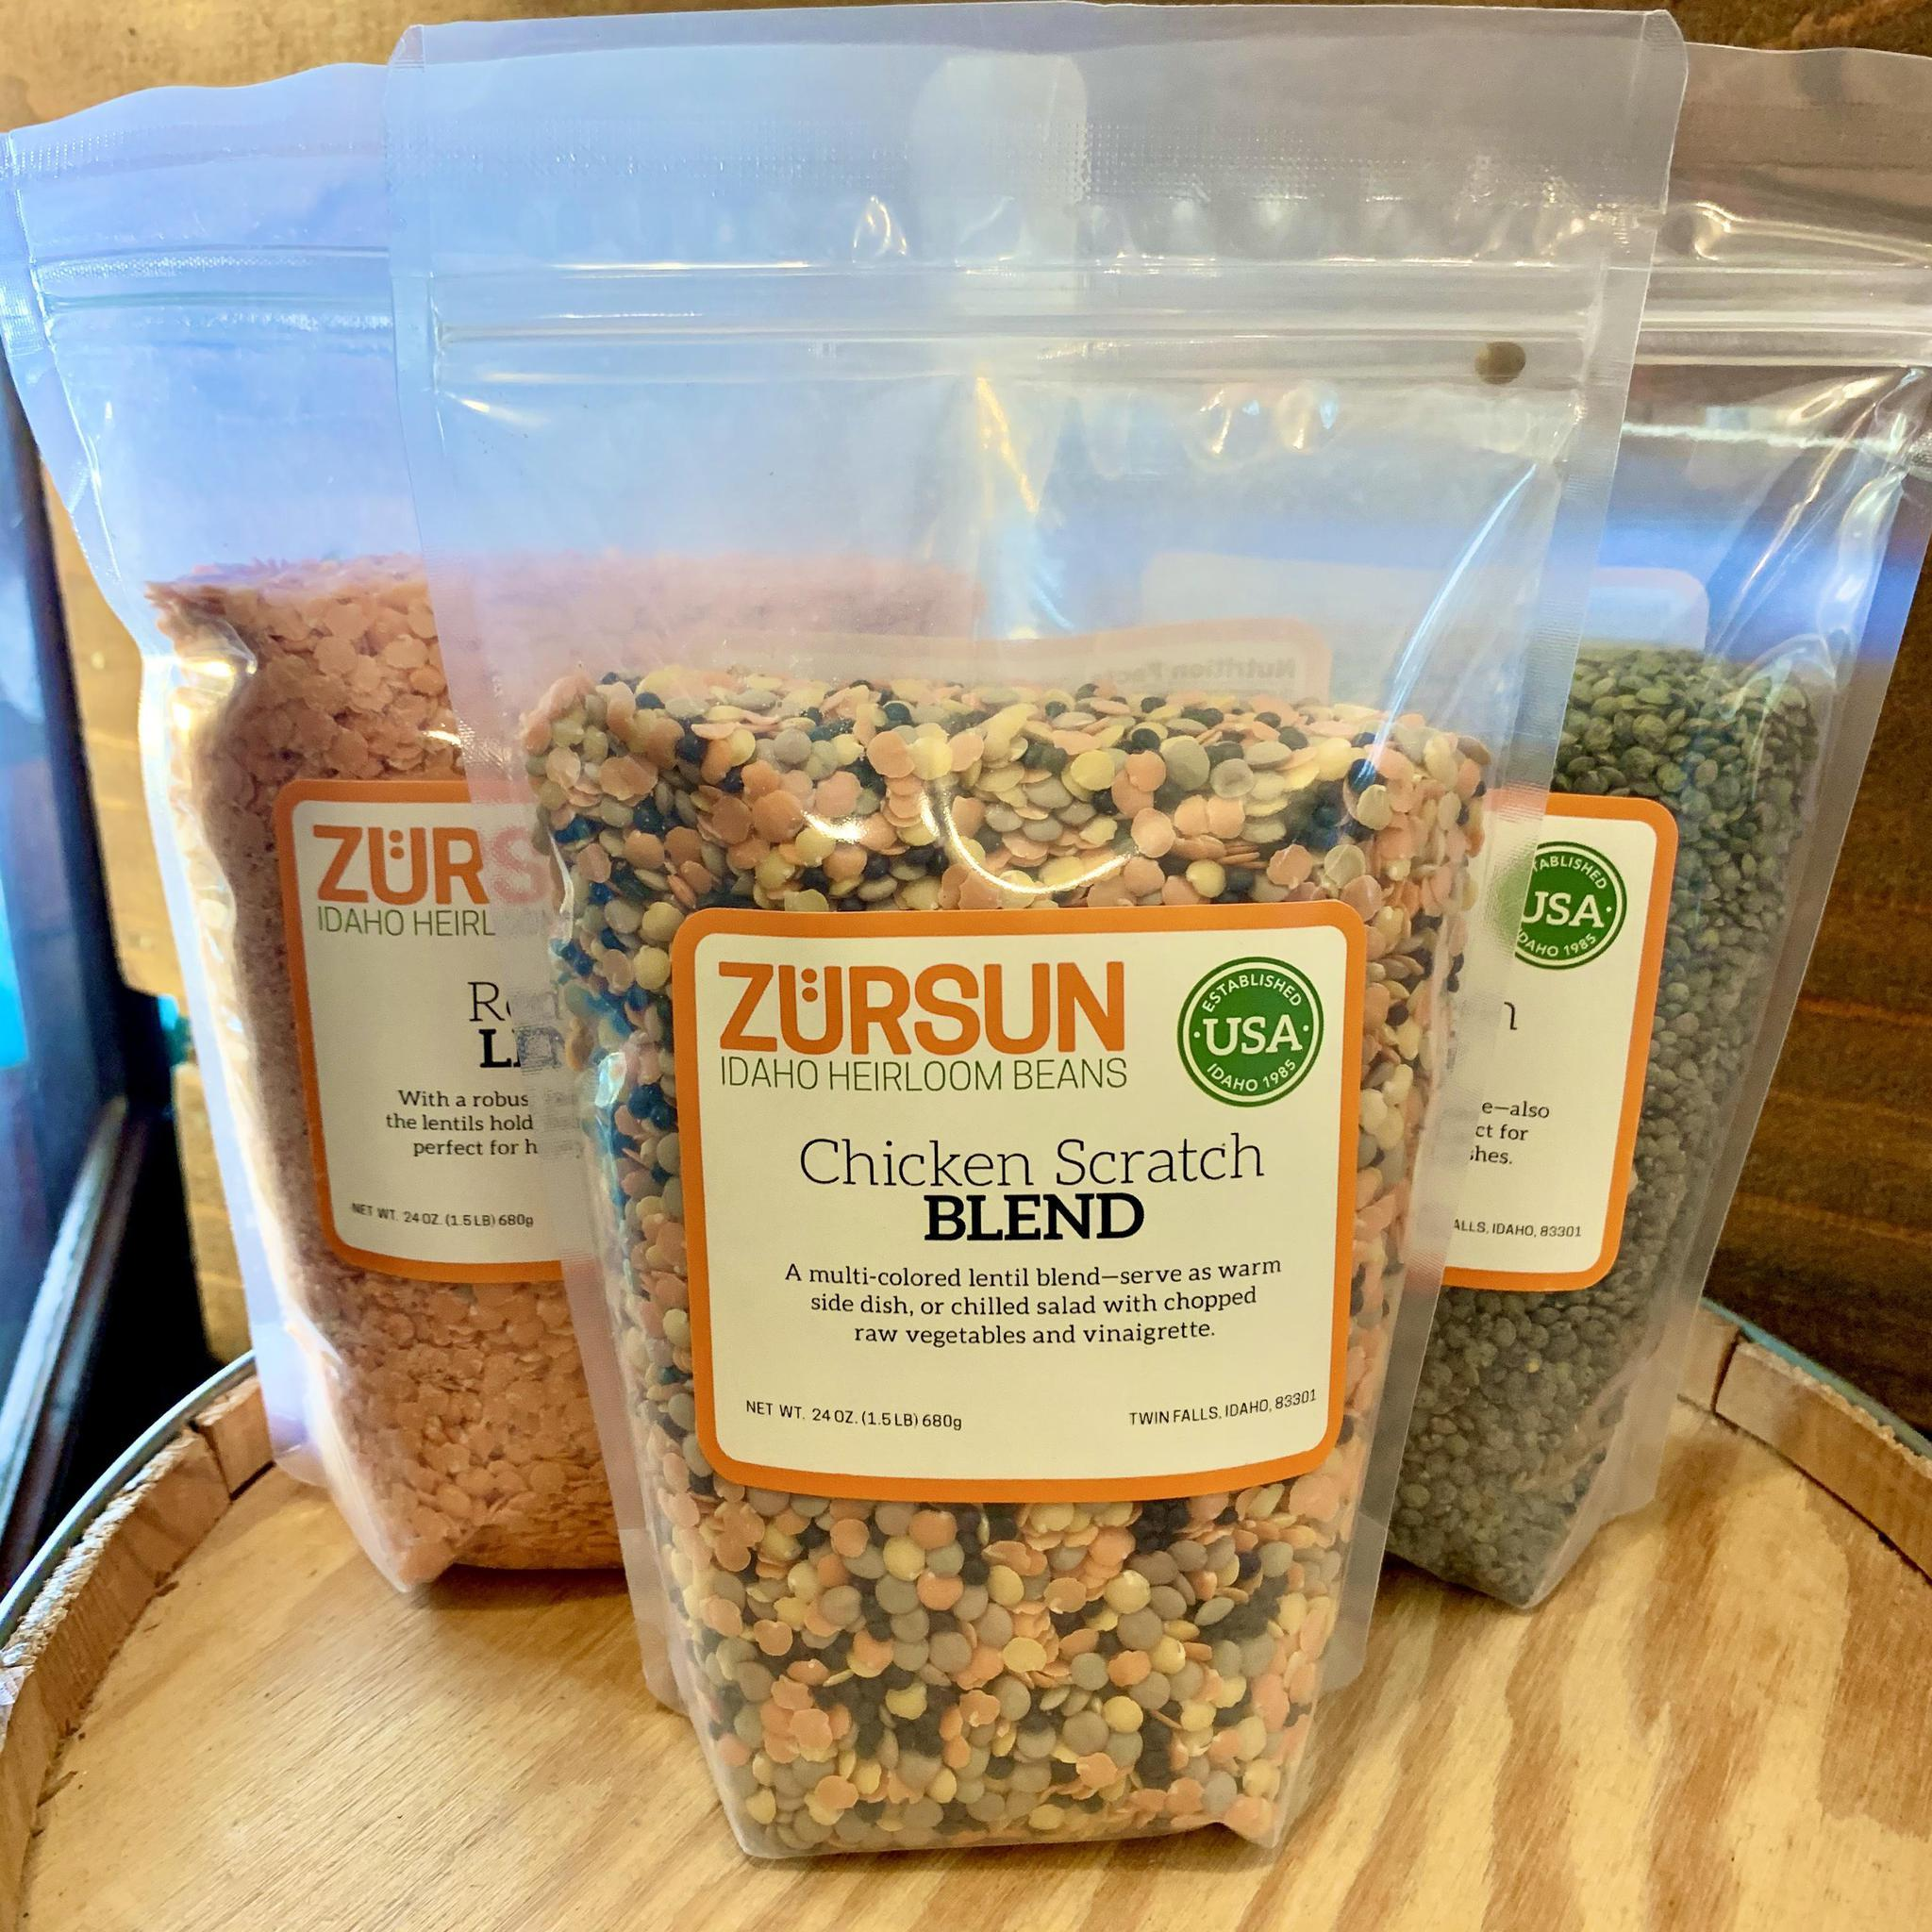 Lentil Blends by Zürsun Idaho Heirloom Beans Chicken Scratch